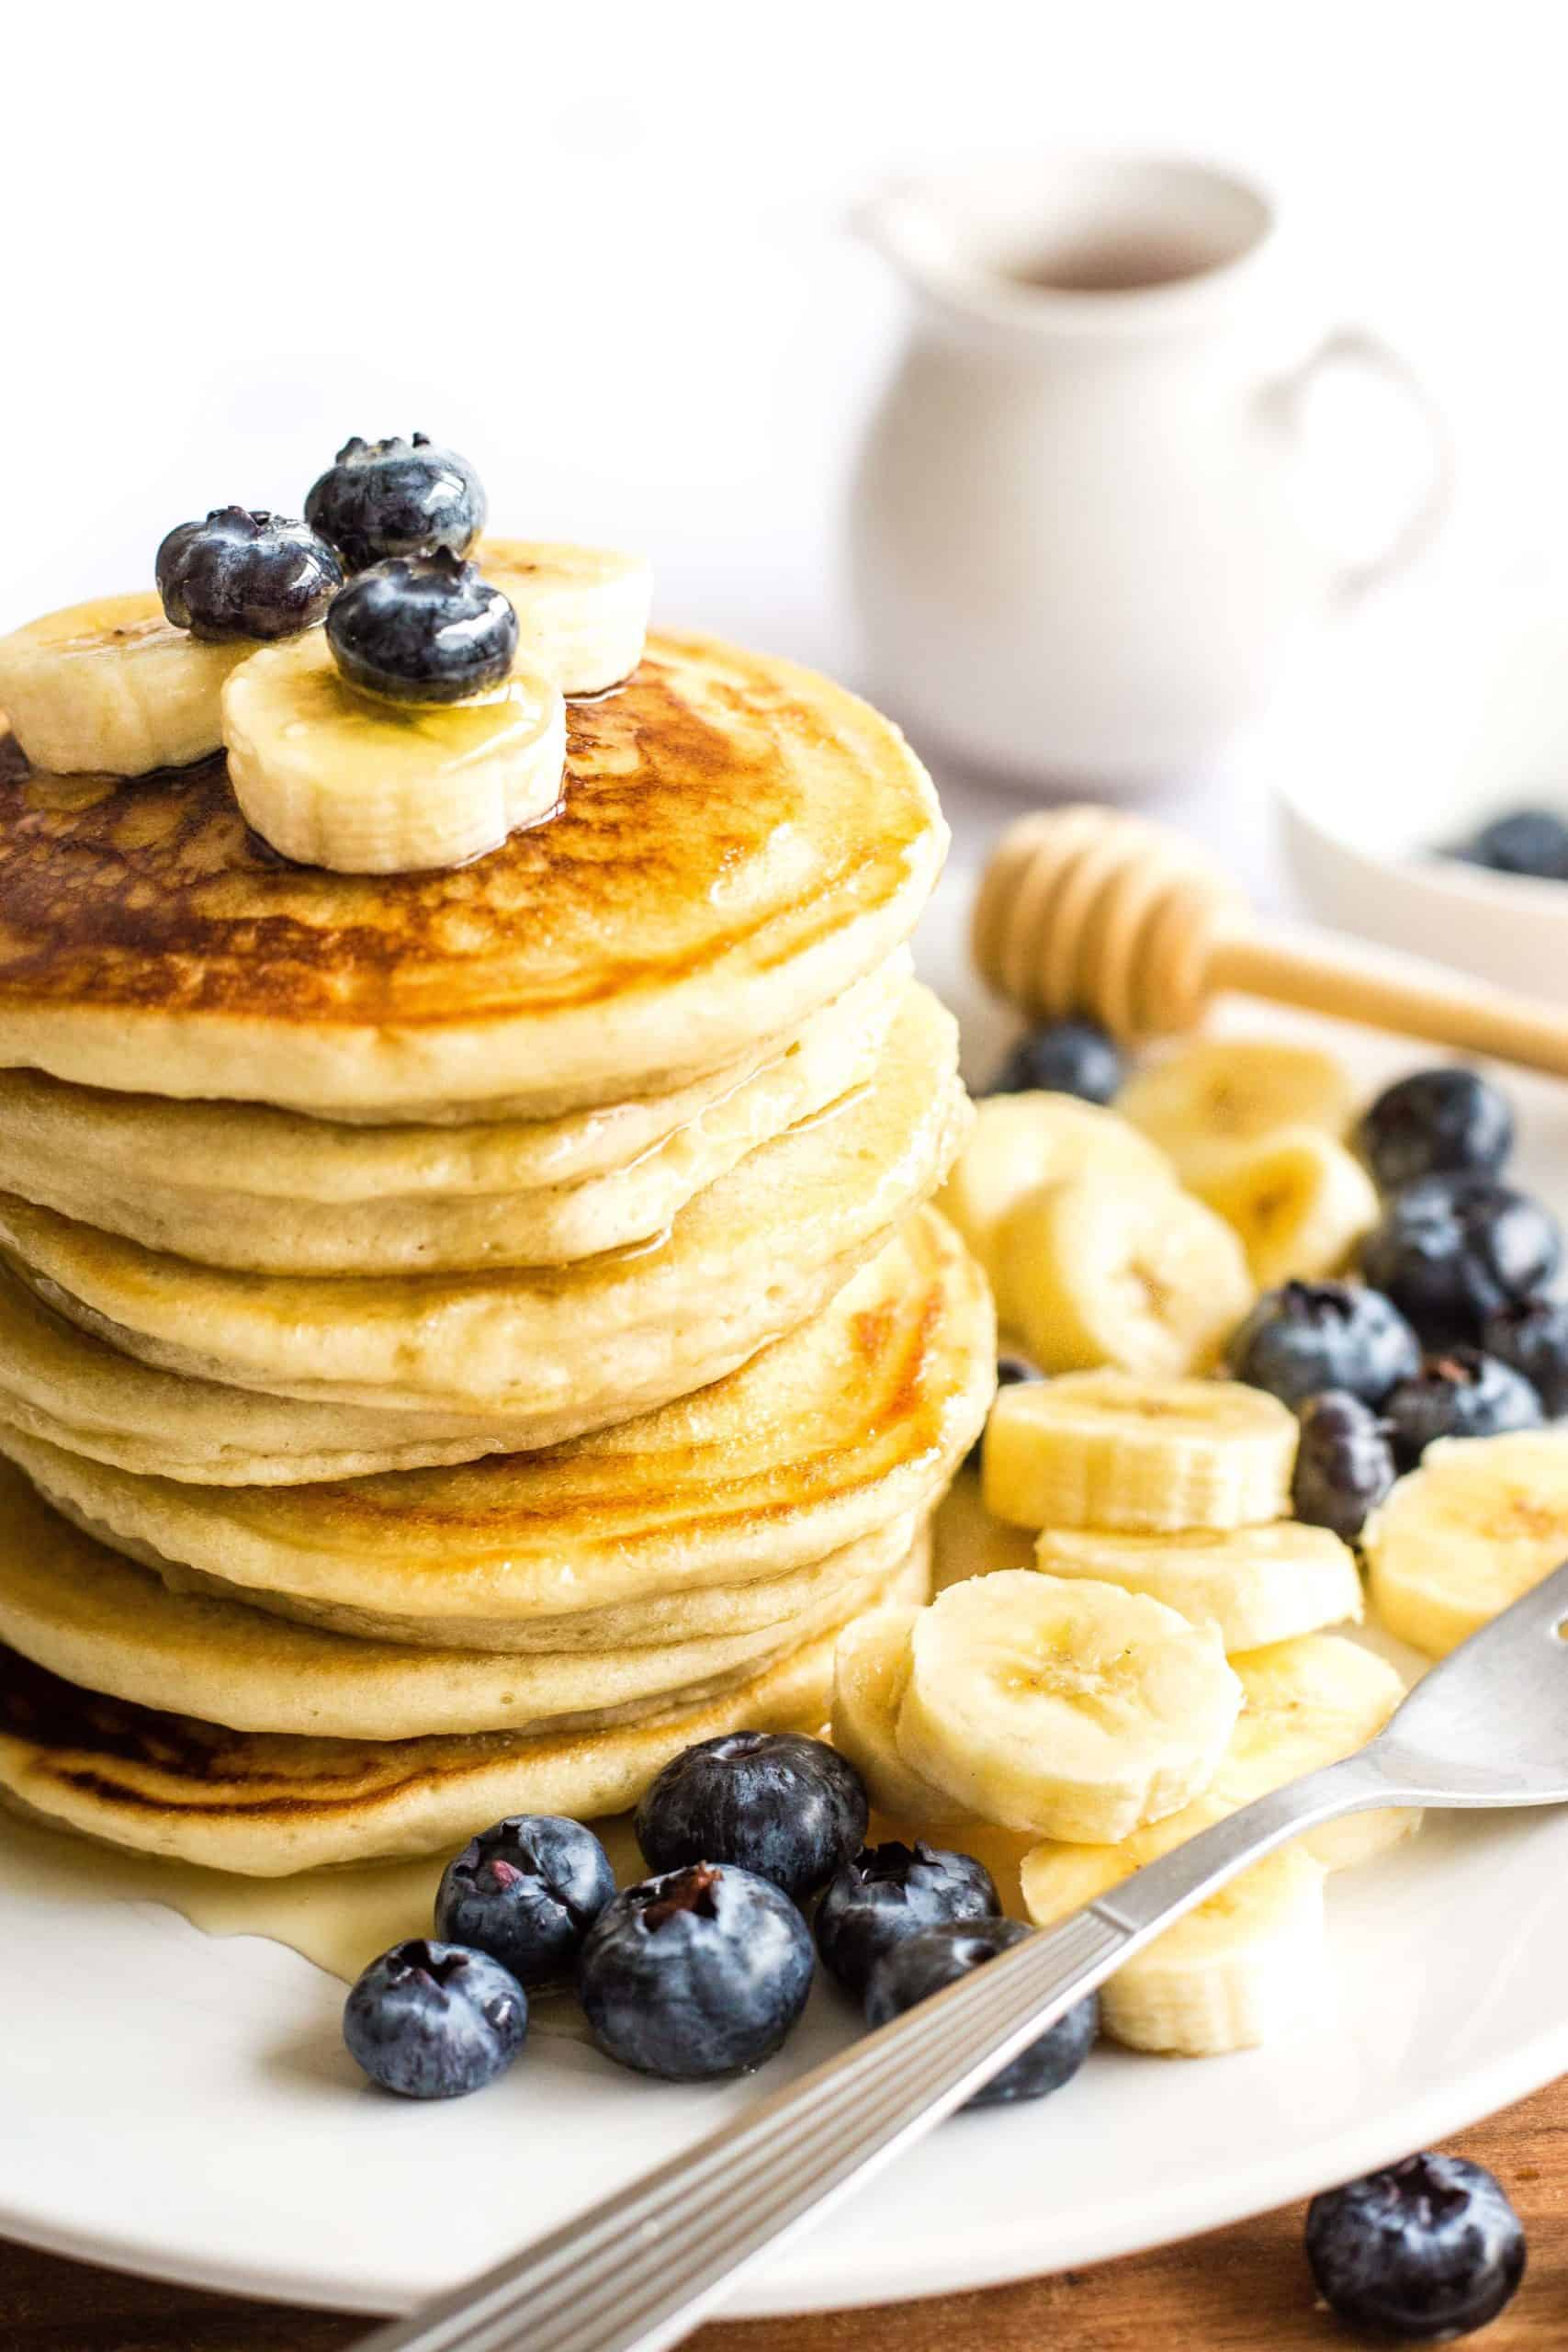 A stack of gluten-free pancakes topped with blueberries and sliced bananas on a plate.